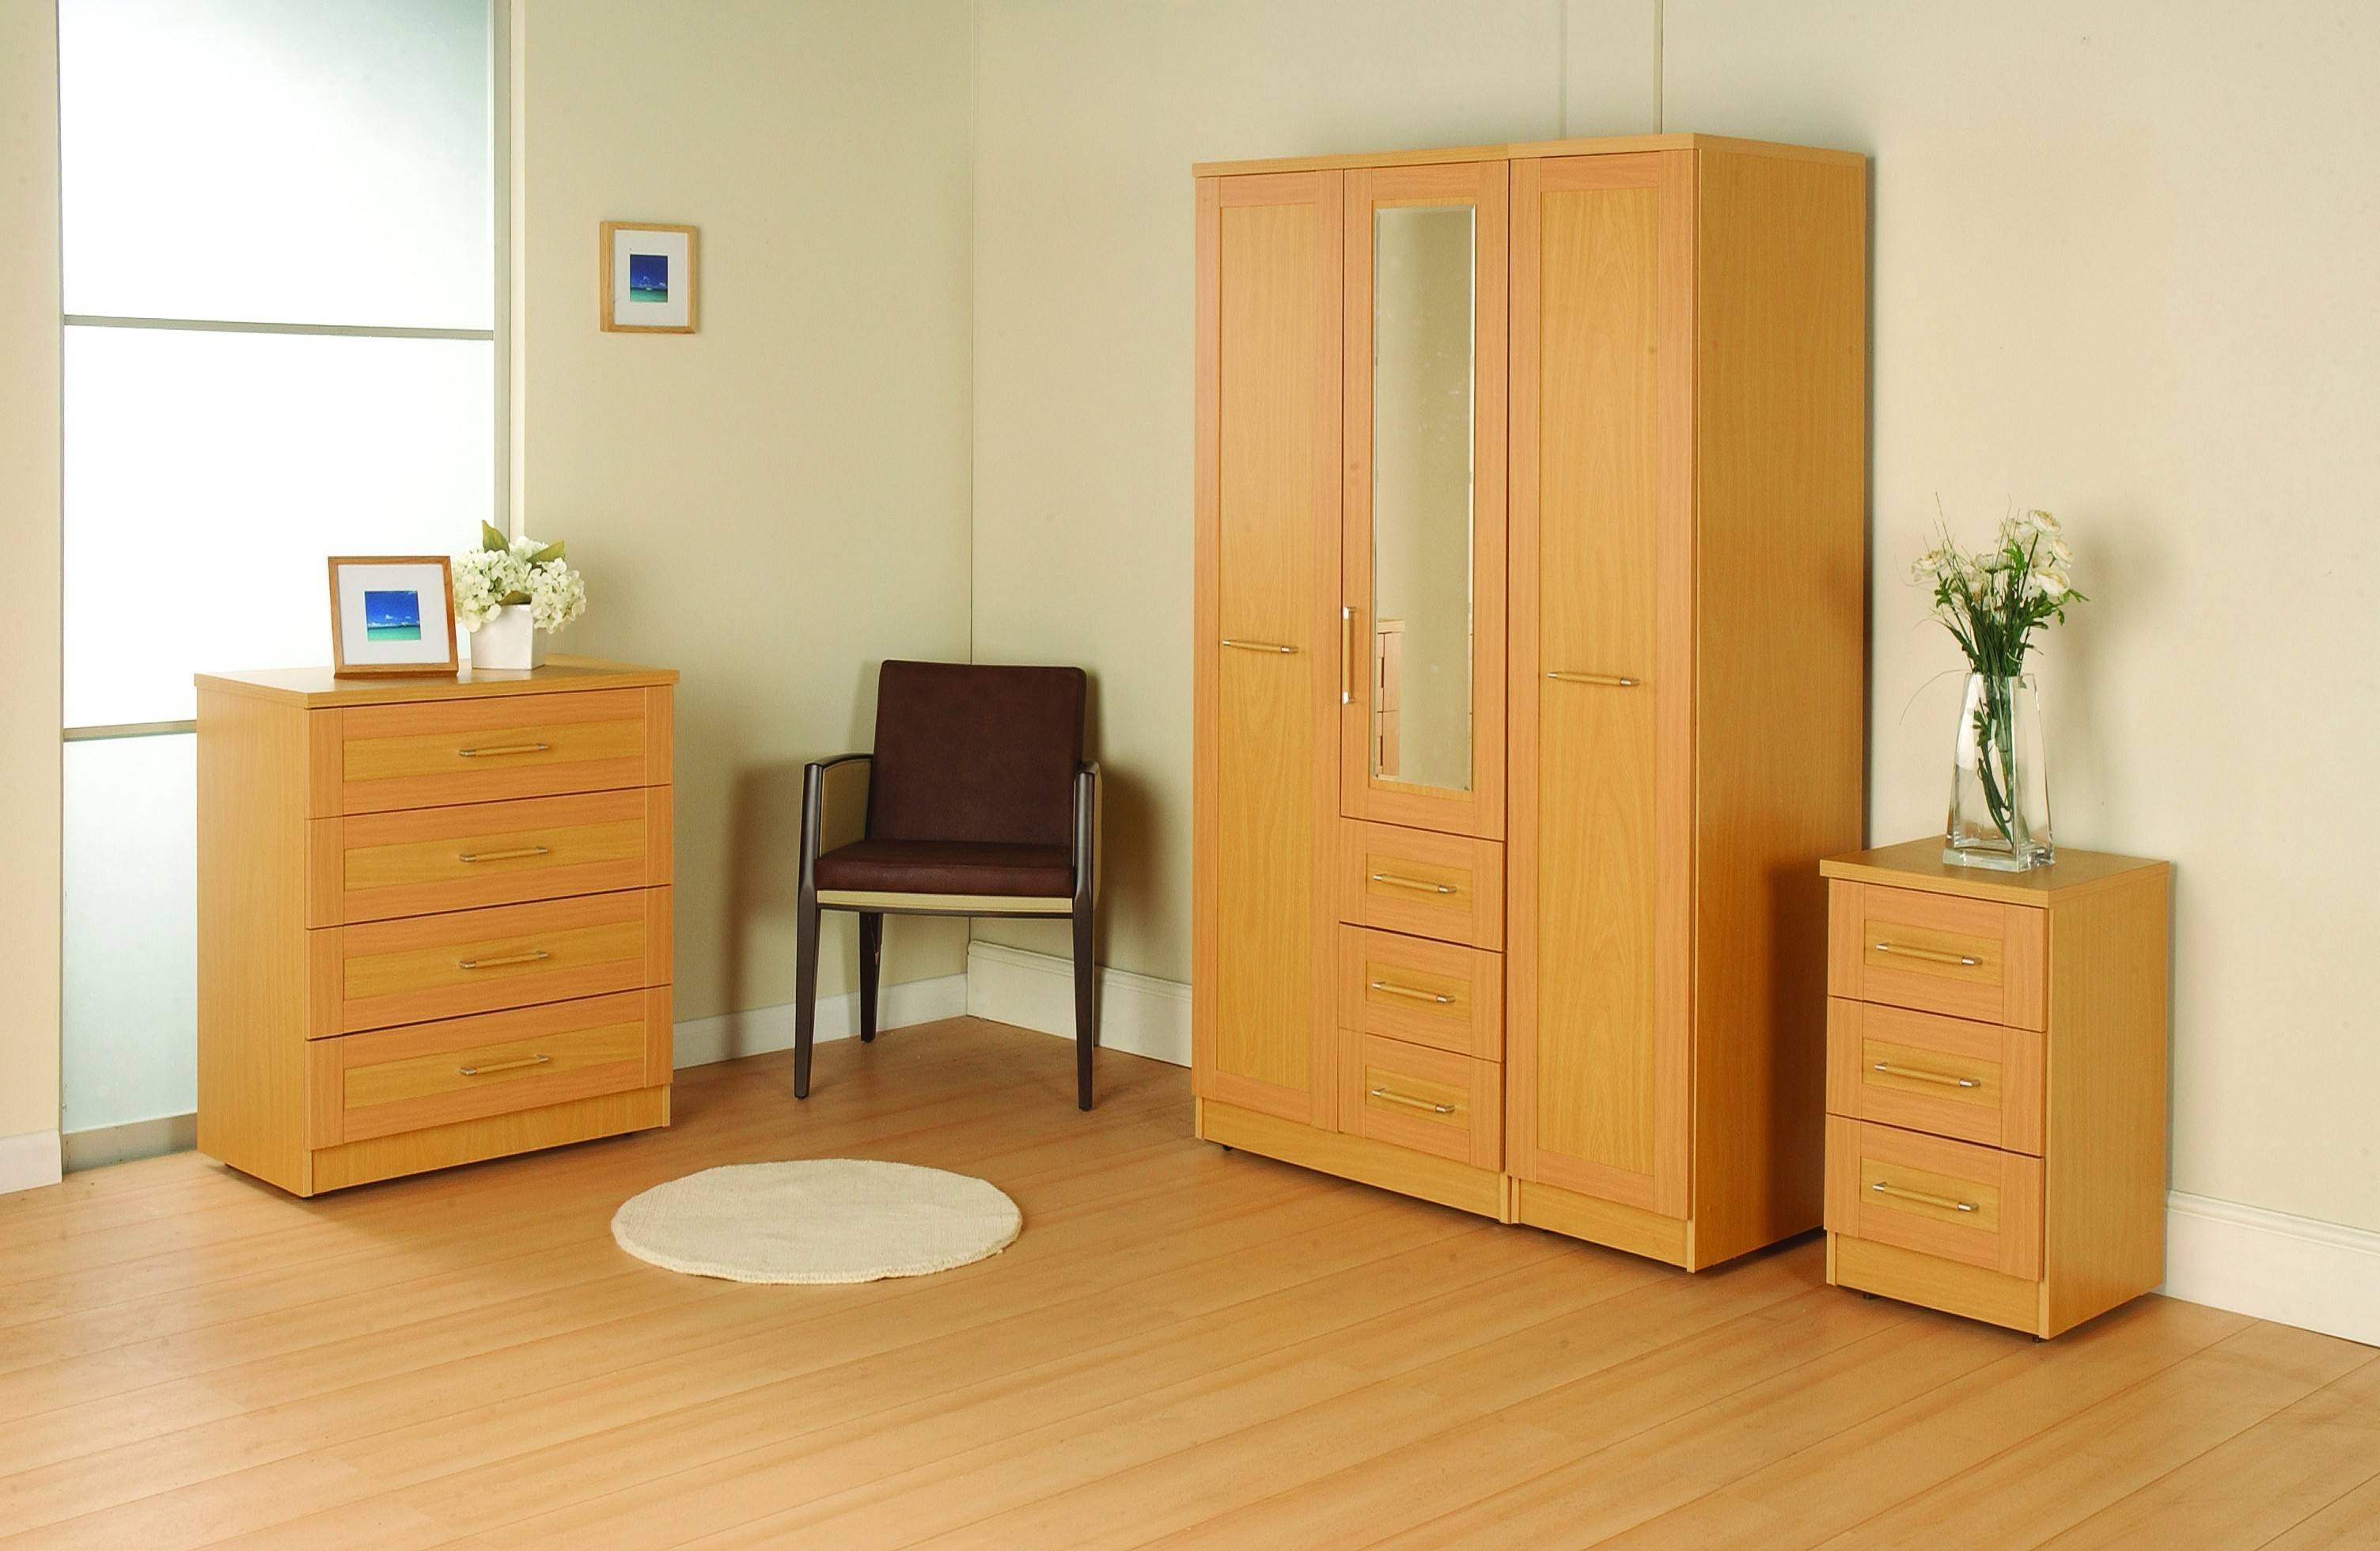 Adams Furniture Store   Bedroom With Wardrobes Chest Of Drawers Combination  (Image 3 Of 15